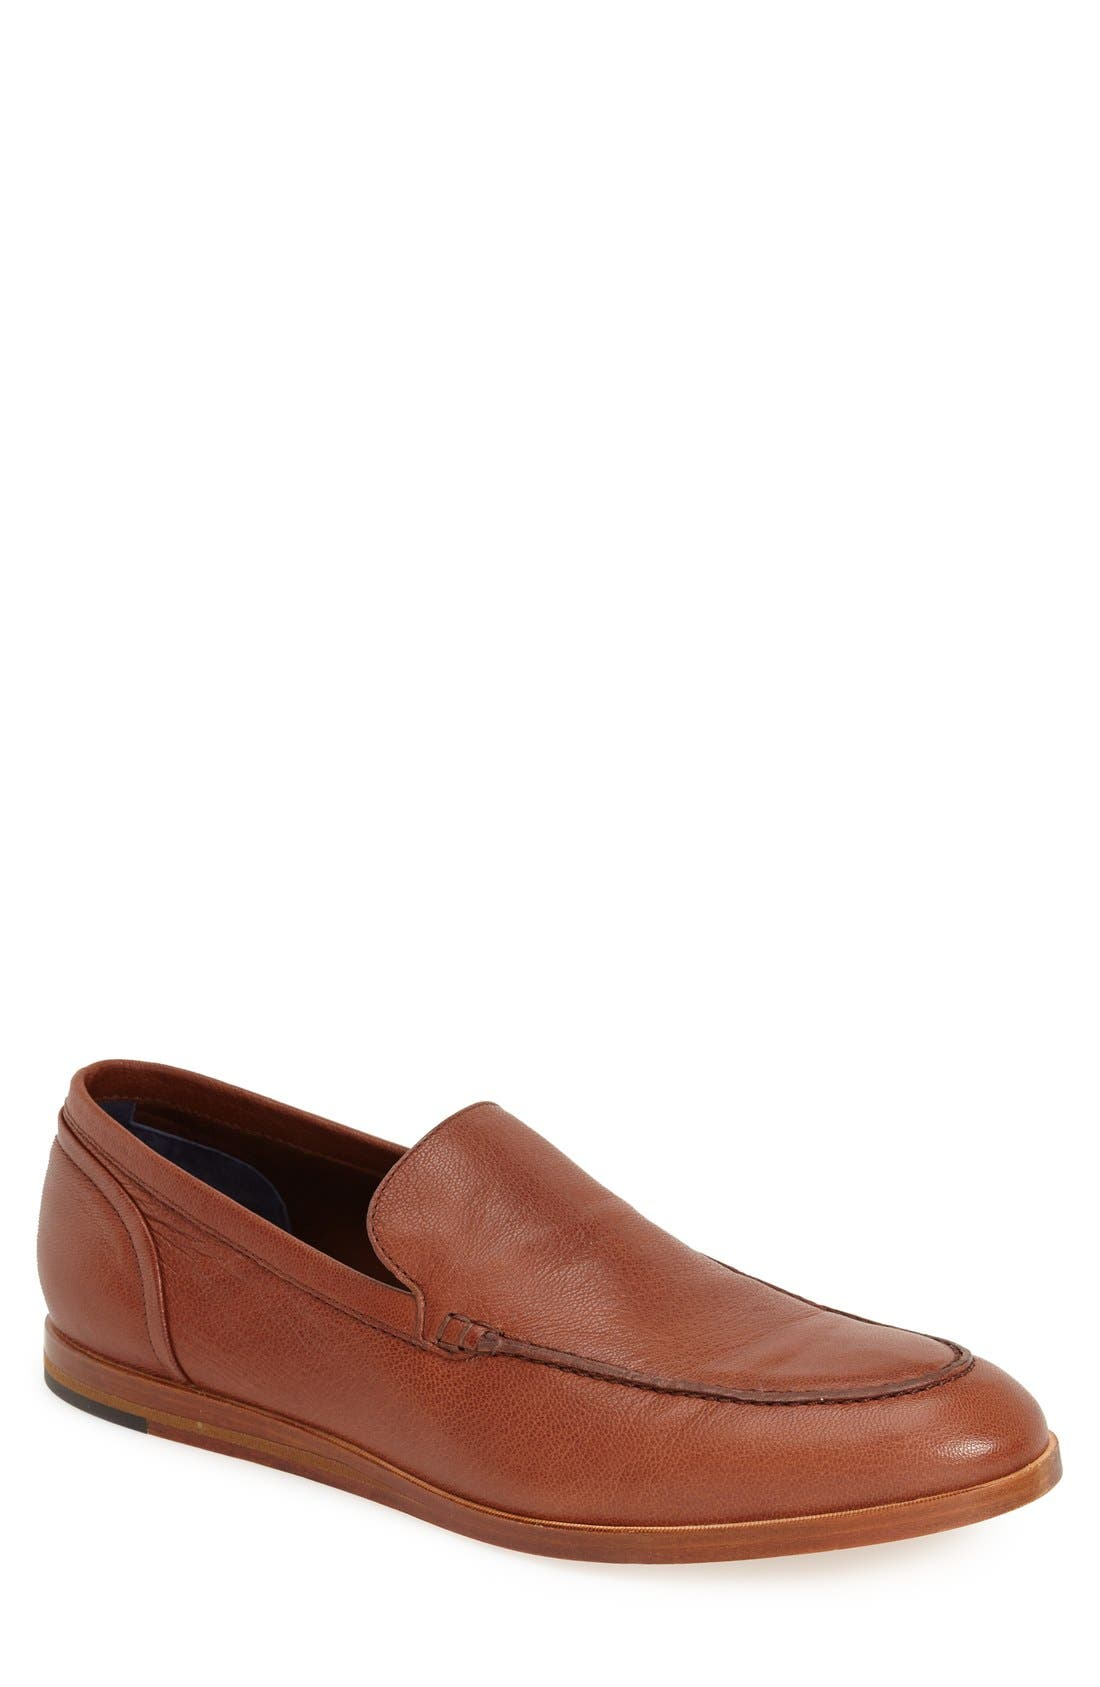 'Bedford' Loafer,                         Main,                         color, Sequoia Brown